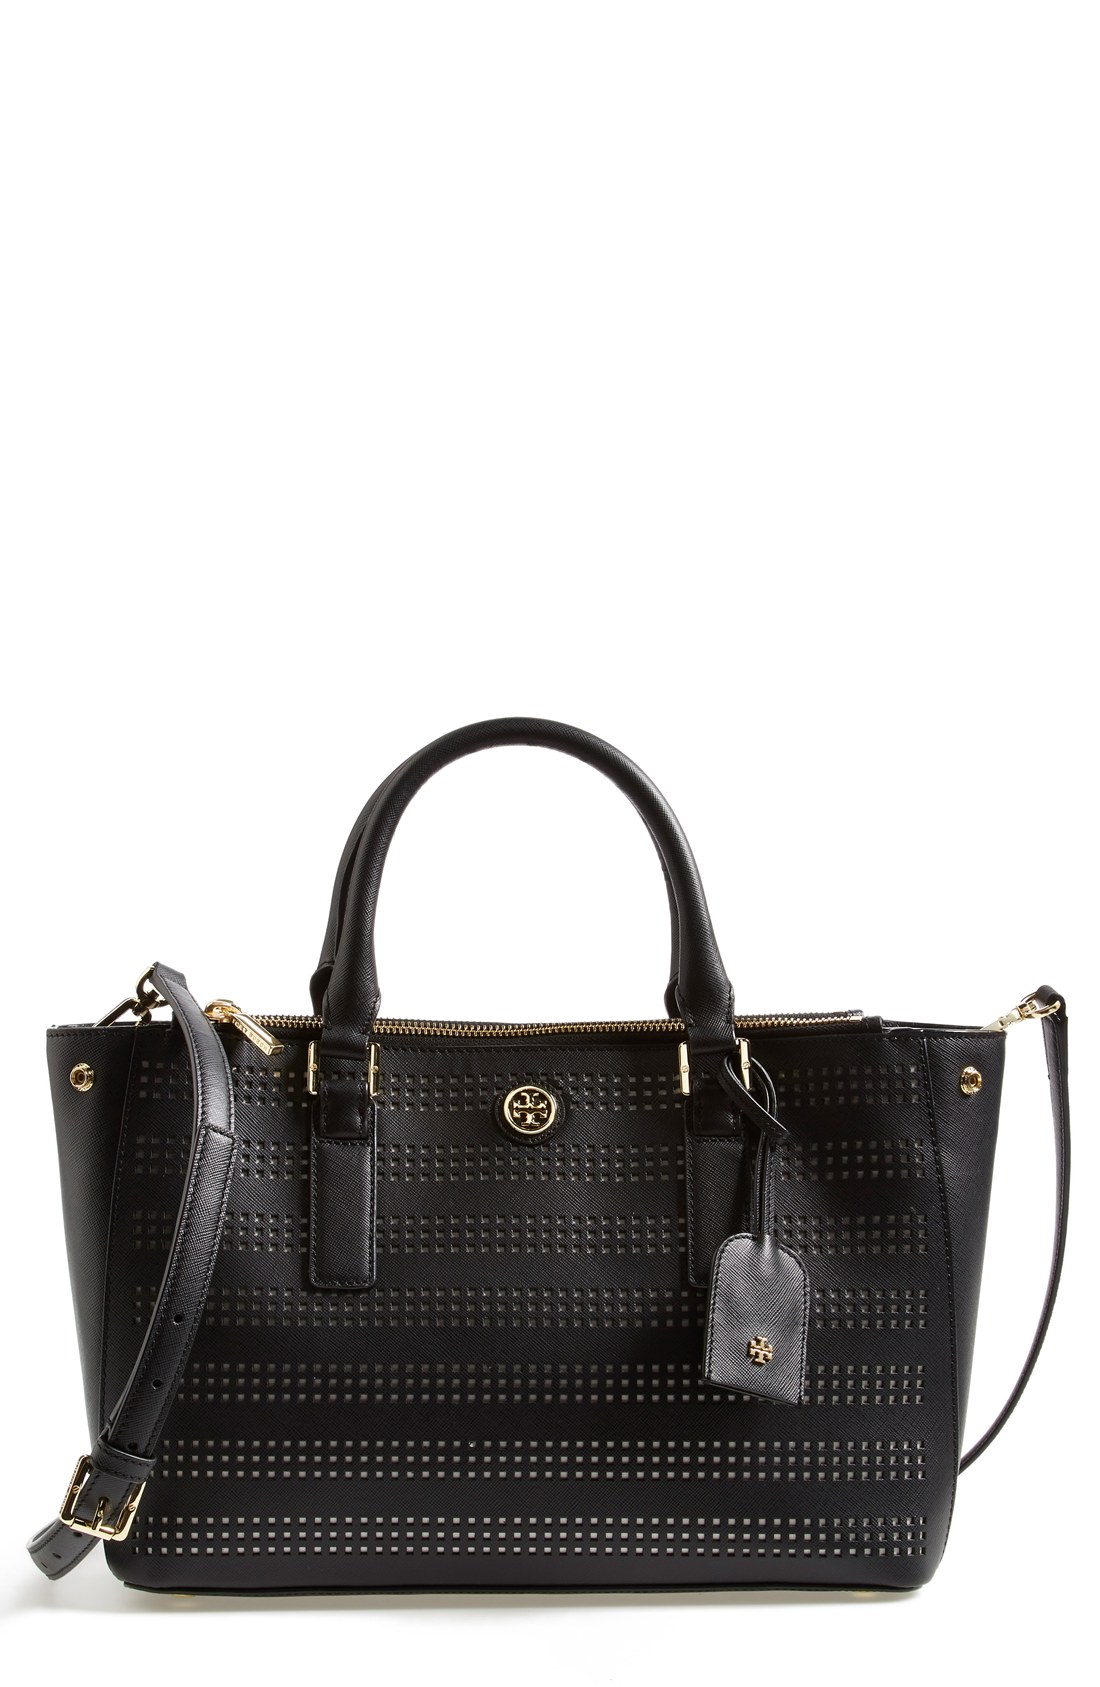 tory burch tory burch 39 mini robinson 39 double zip tote sizes all sizes shop it to me all. Black Bedroom Furniture Sets. Home Design Ideas